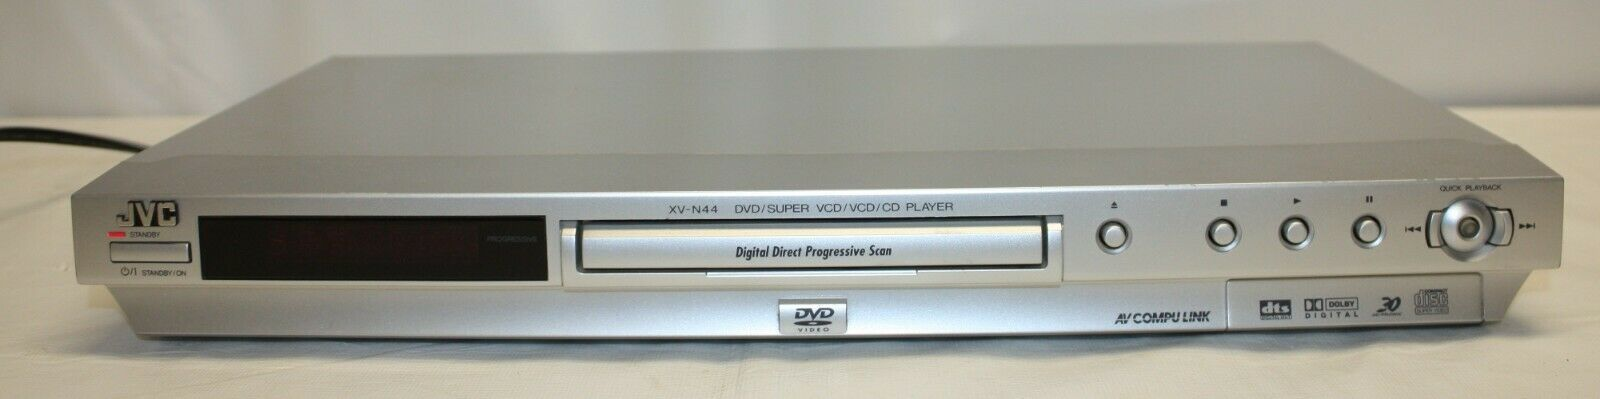 Primary image for JVC DVD / CD Player Model XV-N44SL With Manual TESTED WORKING NO REMOTE